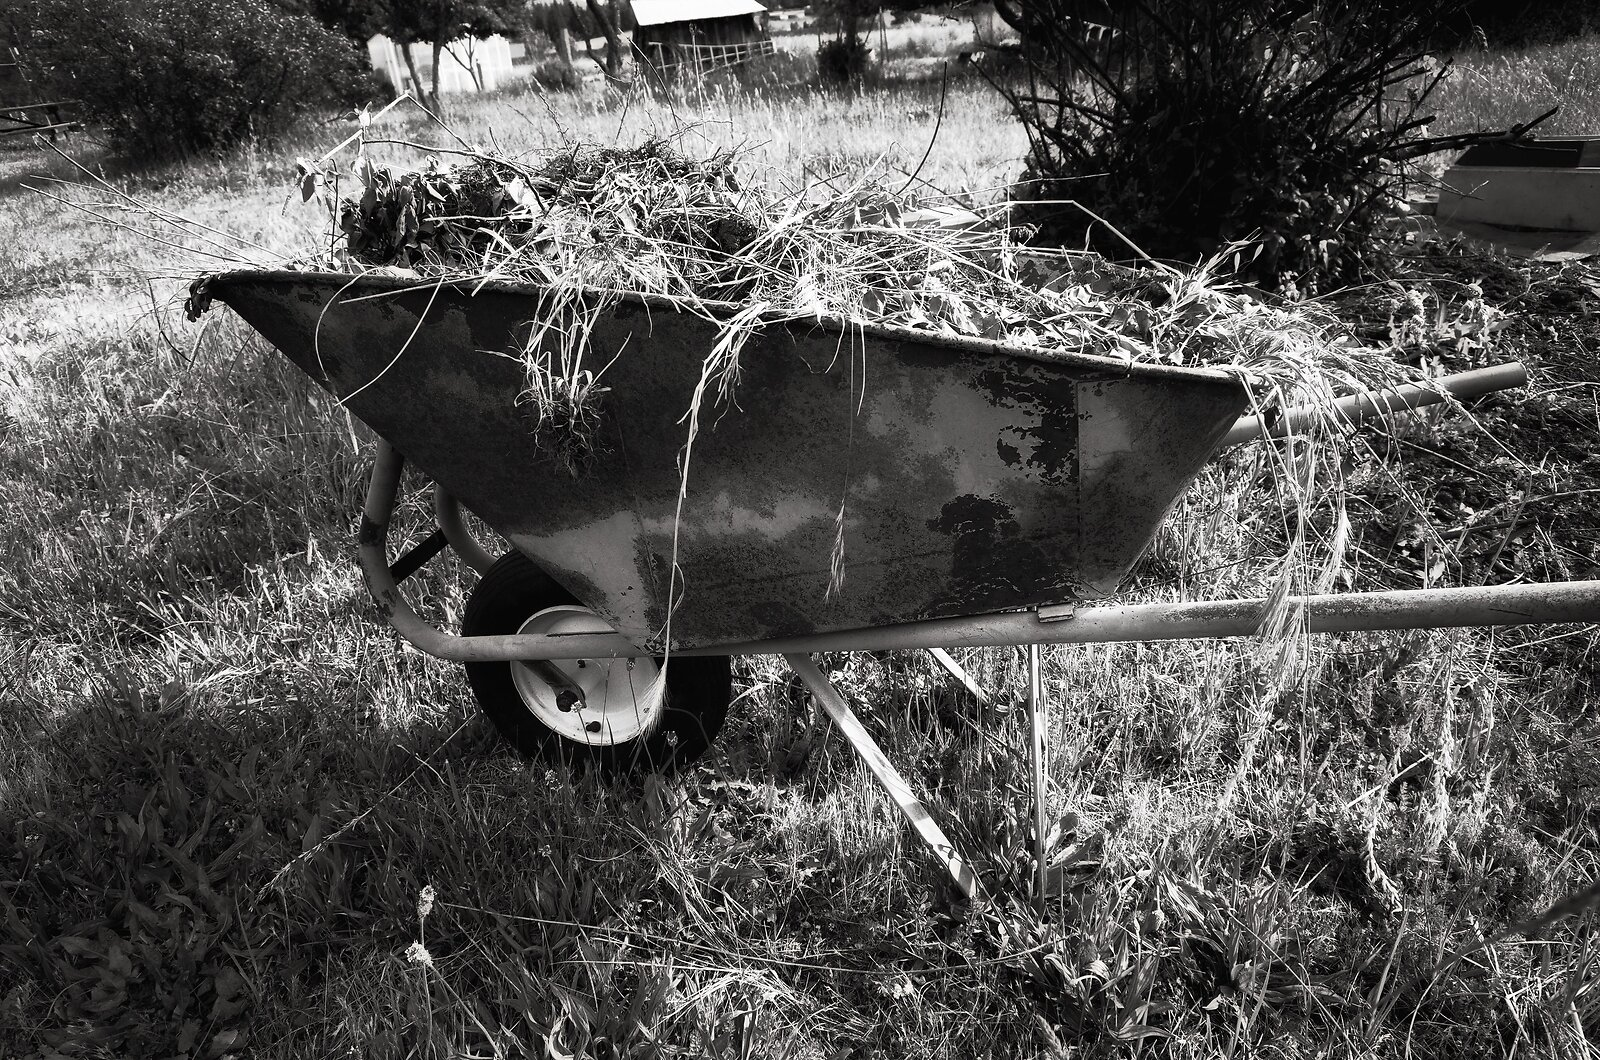 GRII_May25_Wheelbarrow#1.jpg